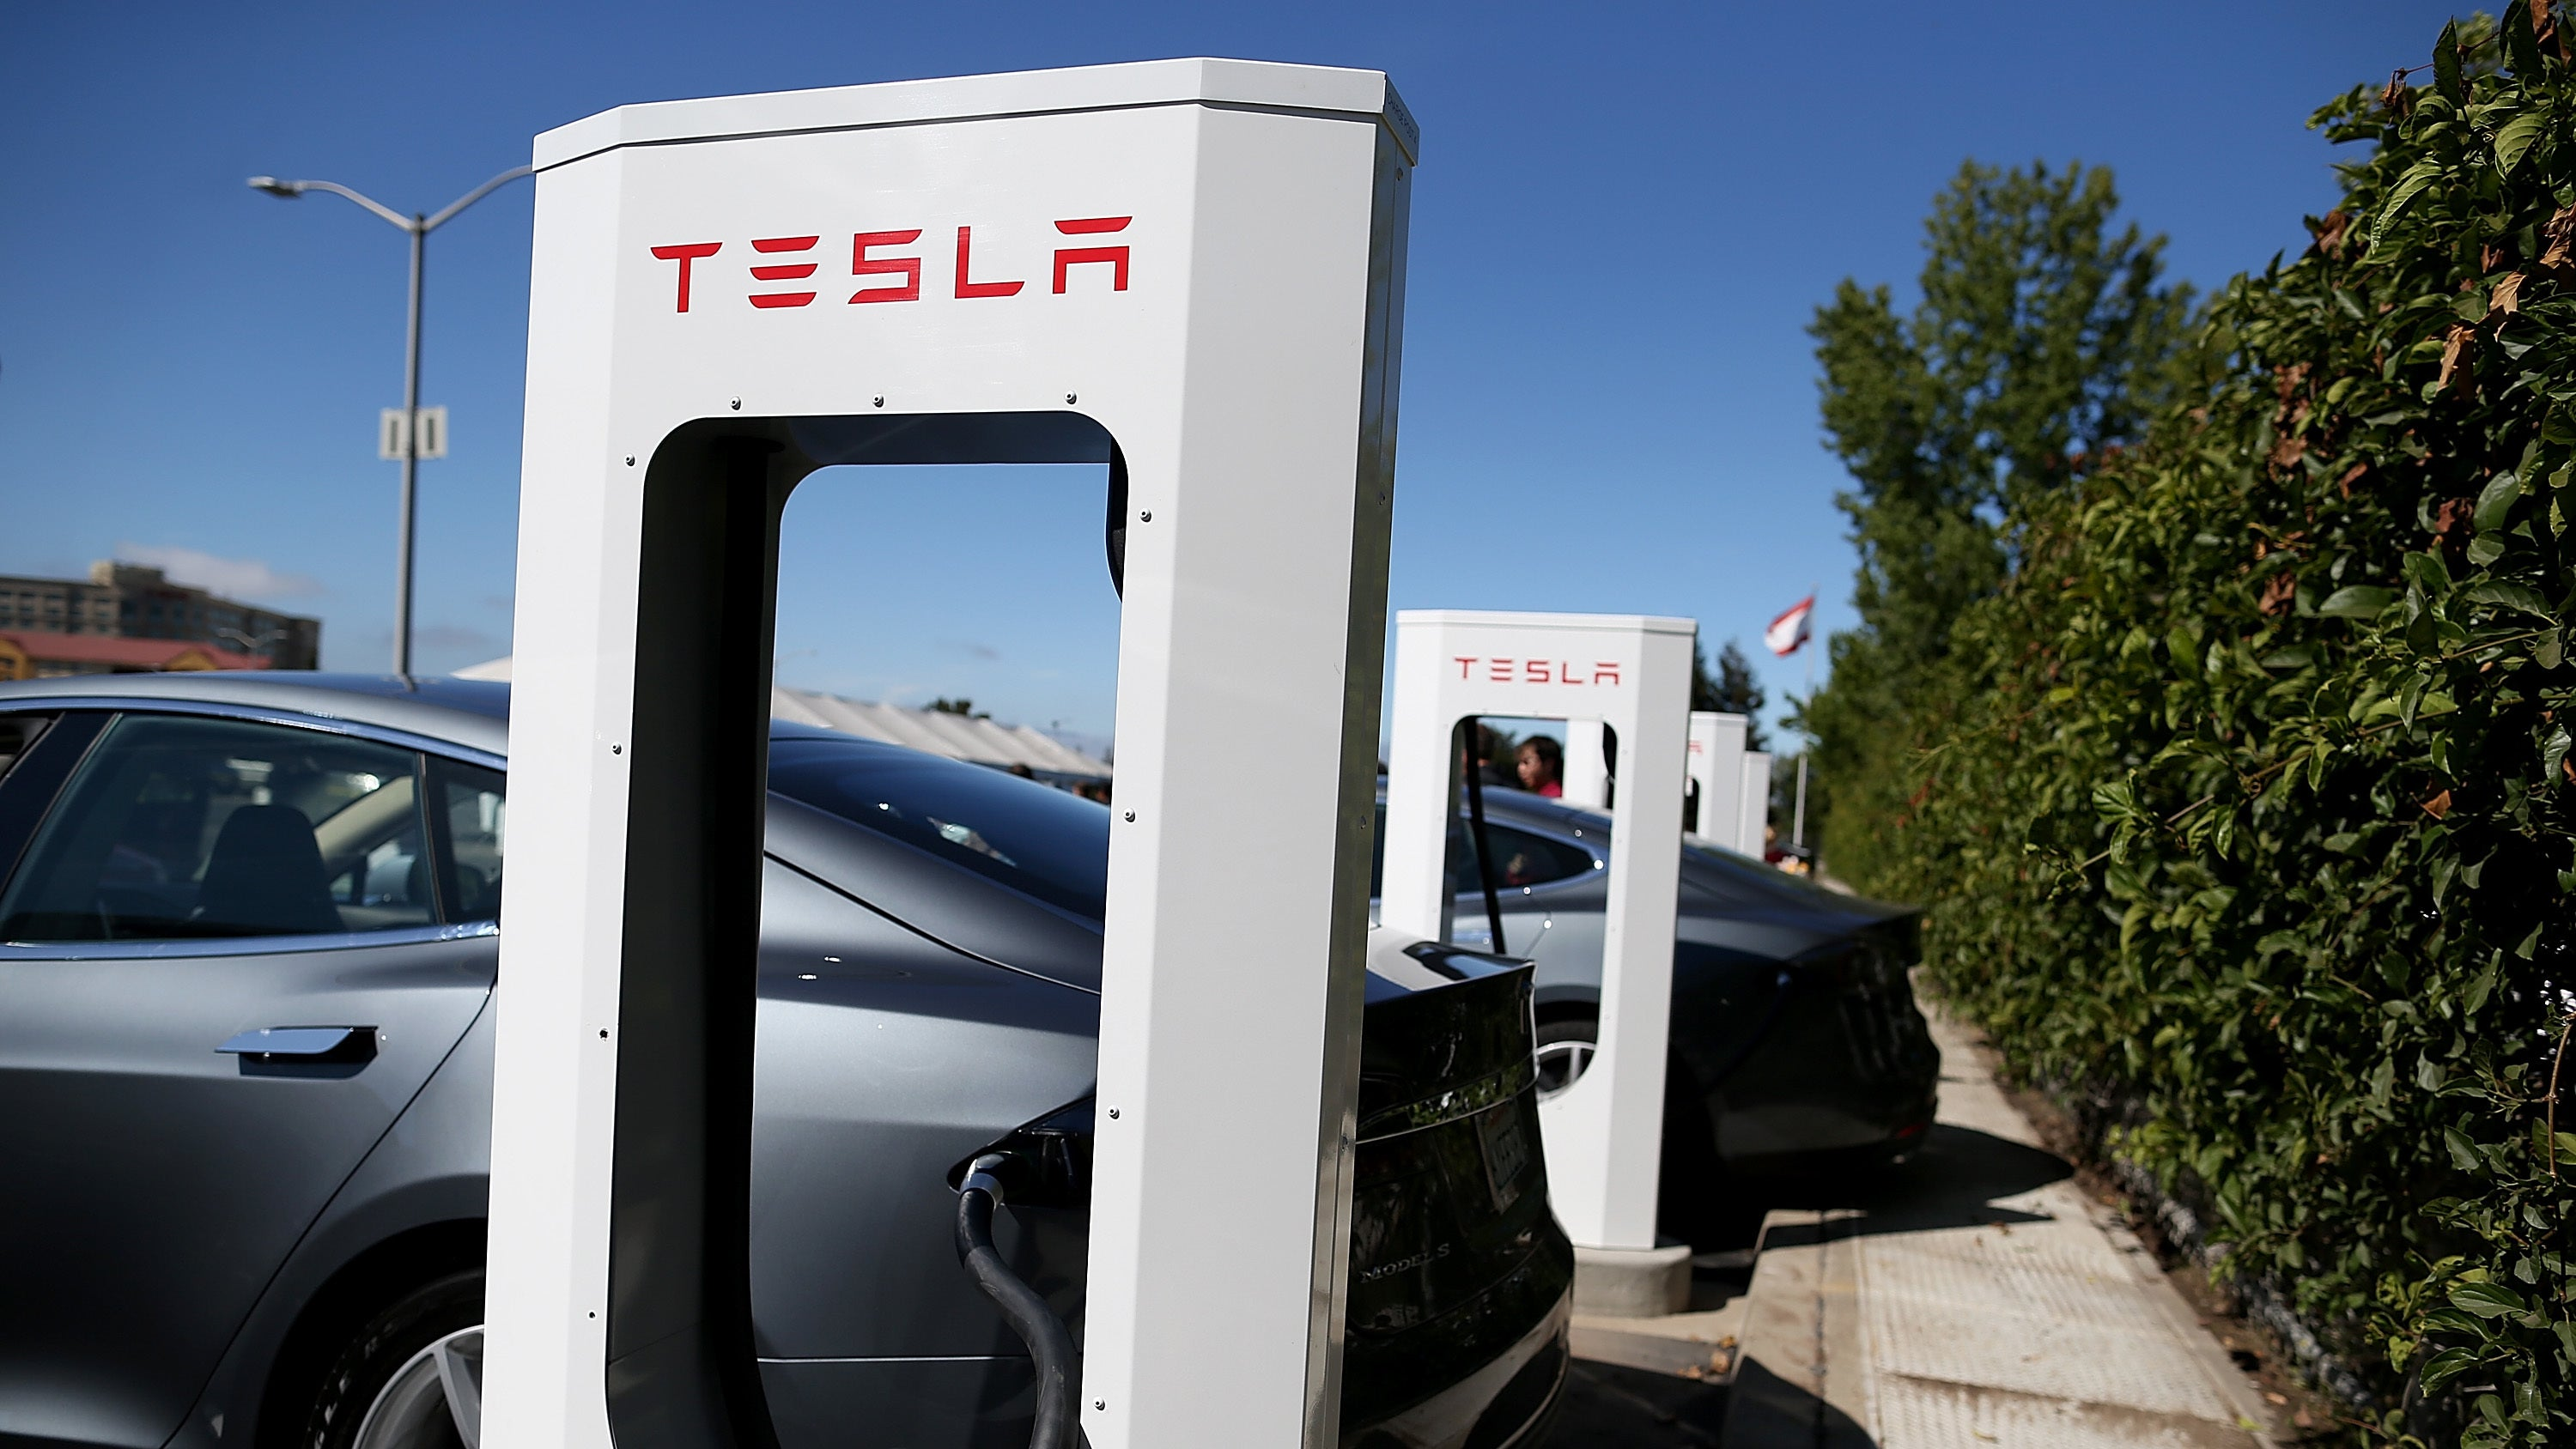 Tesla's Apparently Serious About Building A Supercharger Station With A Drive-In Restaurant